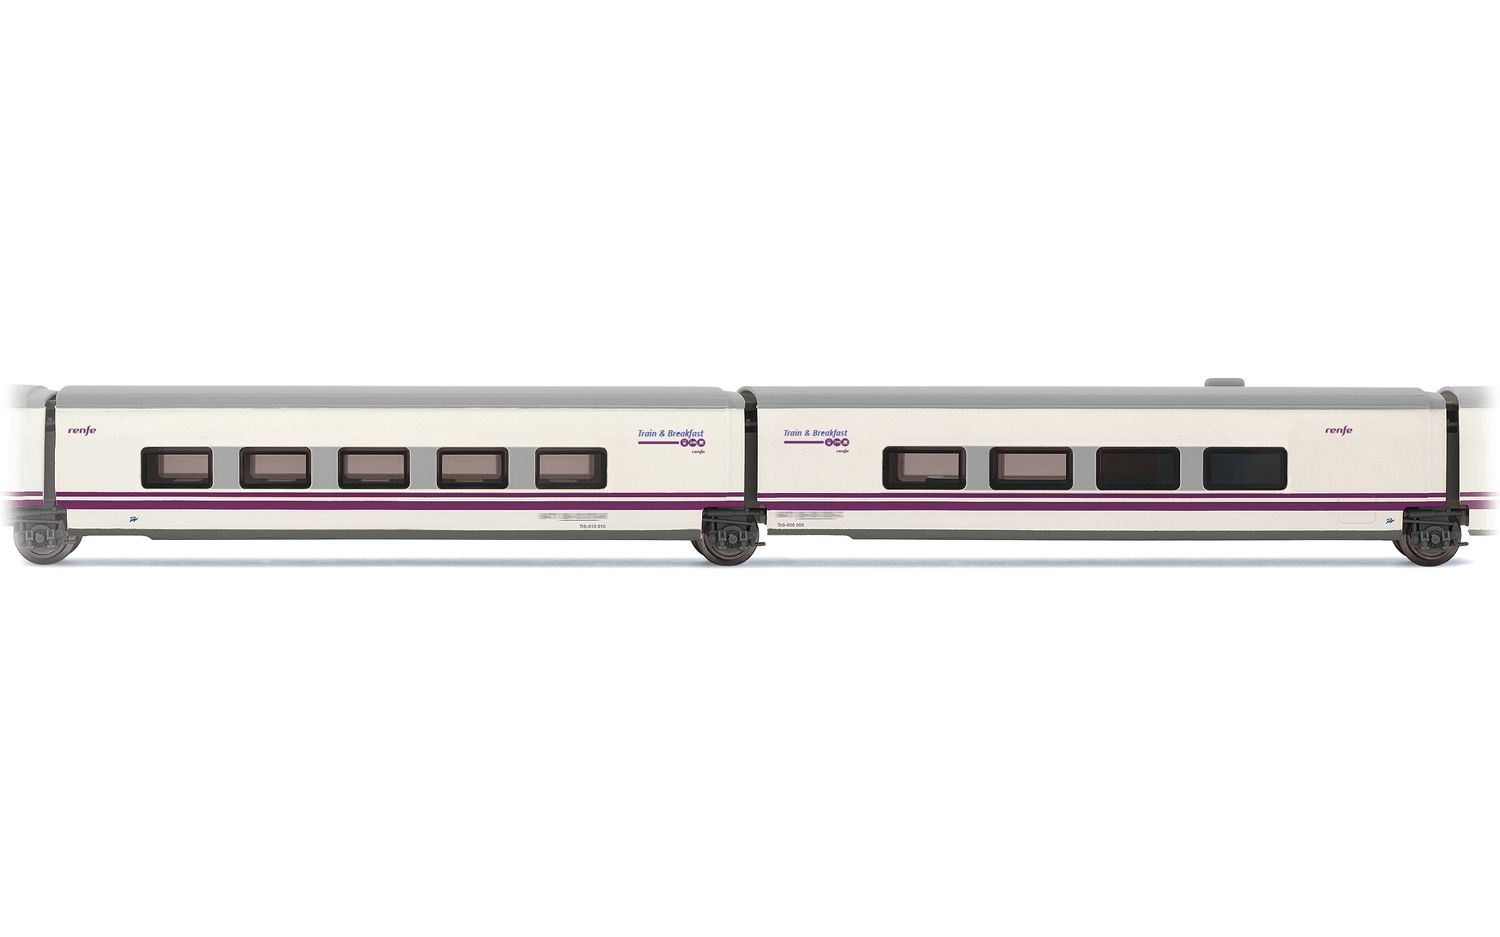 """Picture Gallery for Arnold HN4212 2-unit set Talgo """"Train & Breakf"""